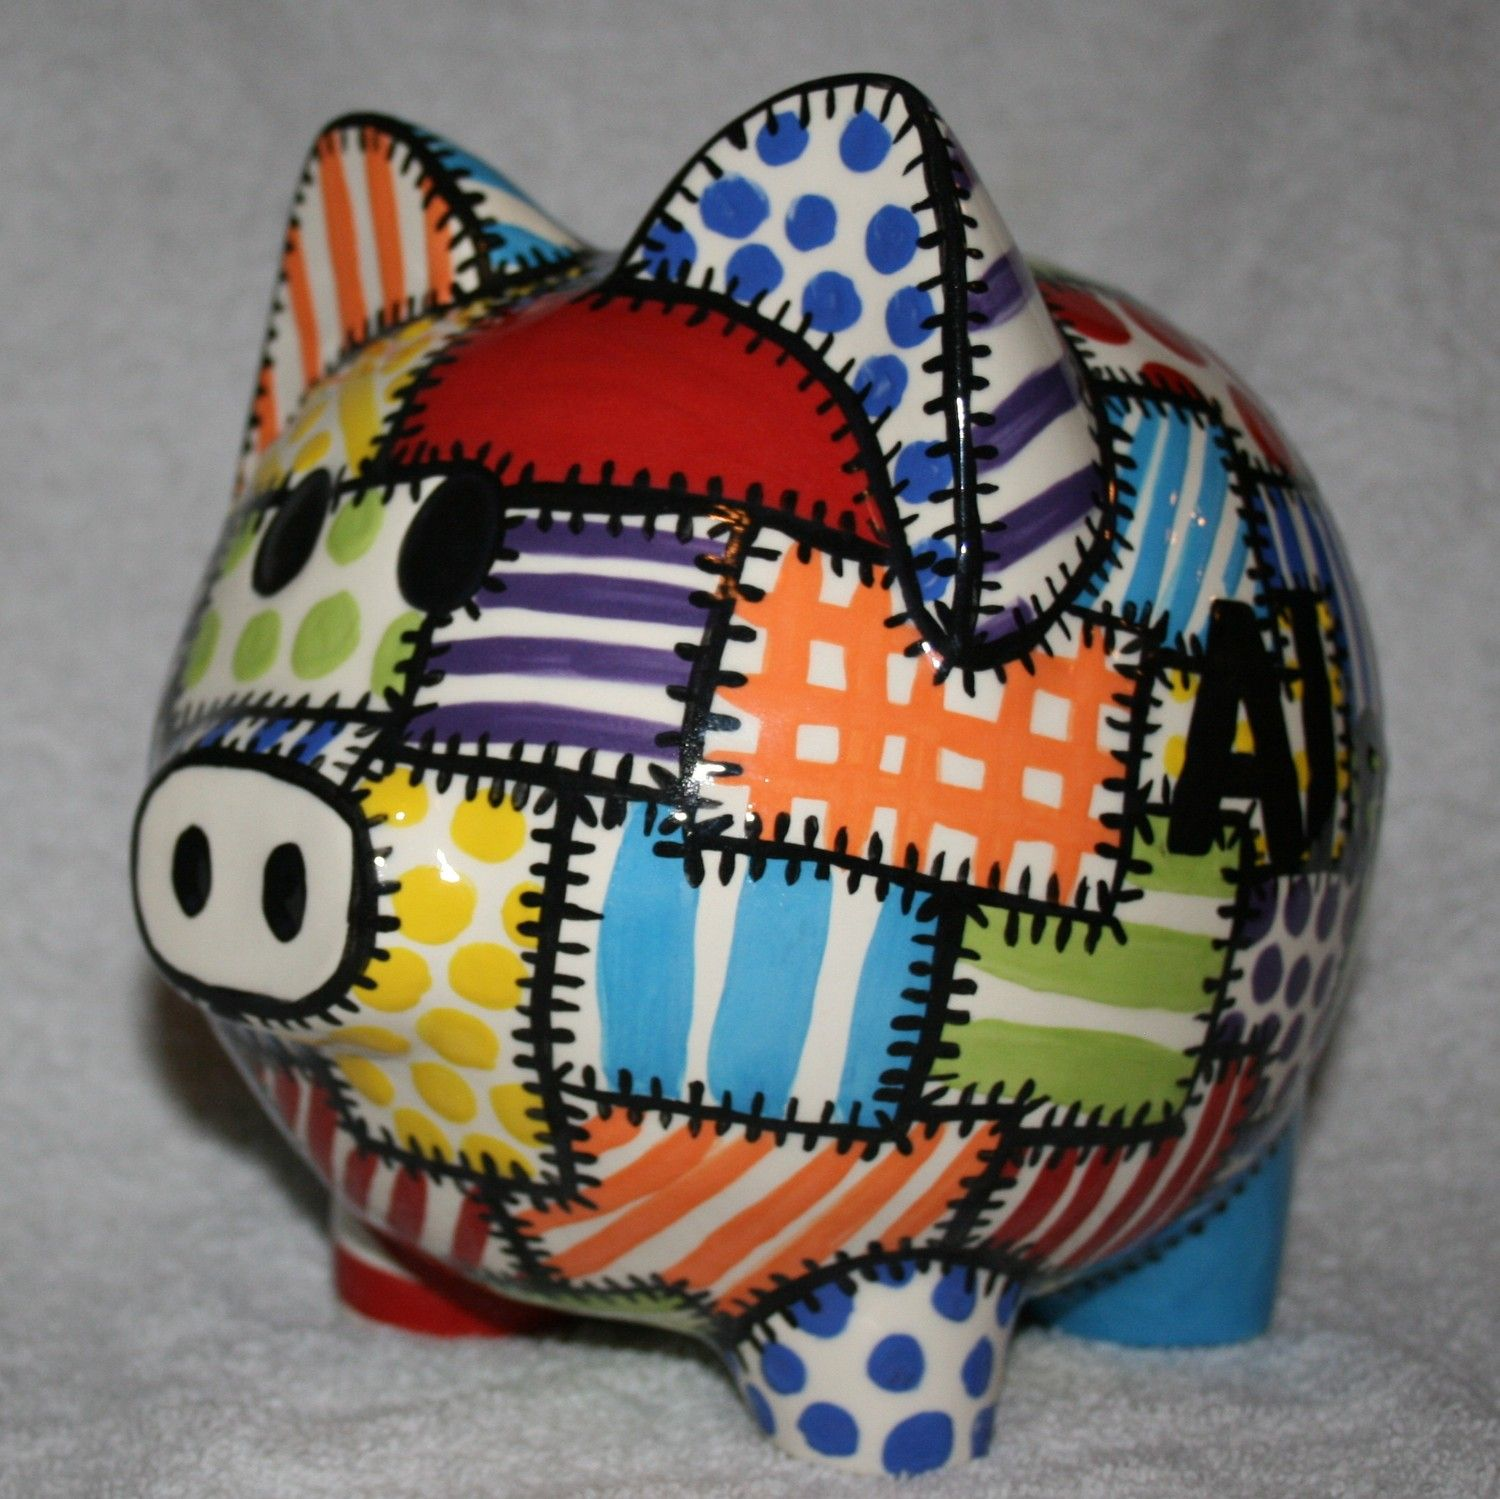 Piggy Bank Idea Piggy Bank Quilted Colors 50 00 Via Etsy Here Piggie